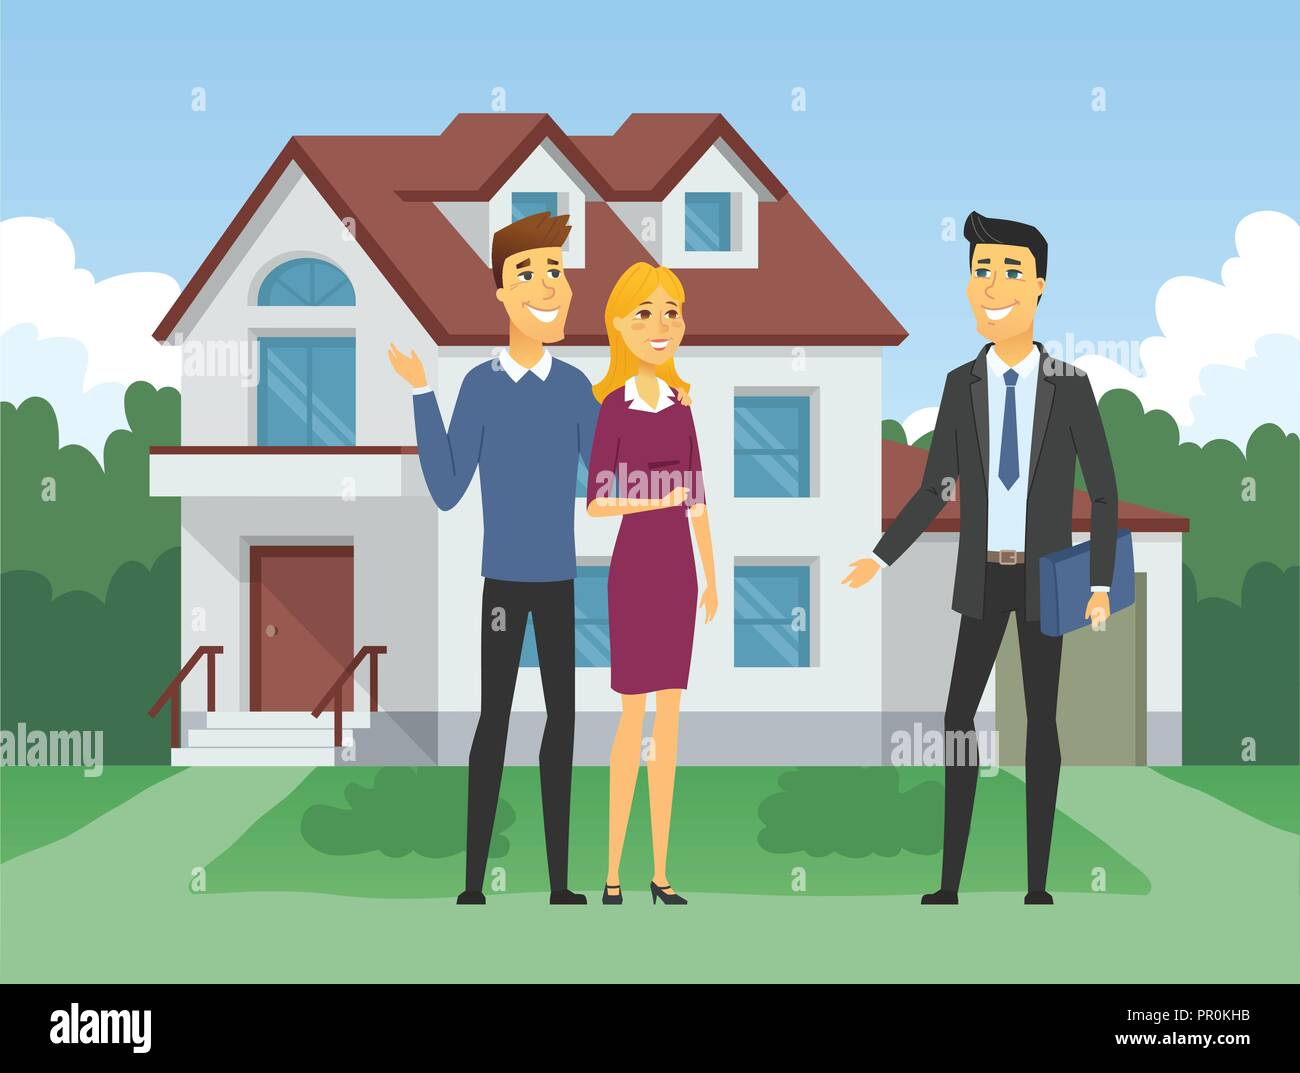 Real estate agency - cartoon people characters illustration - Stock Vector